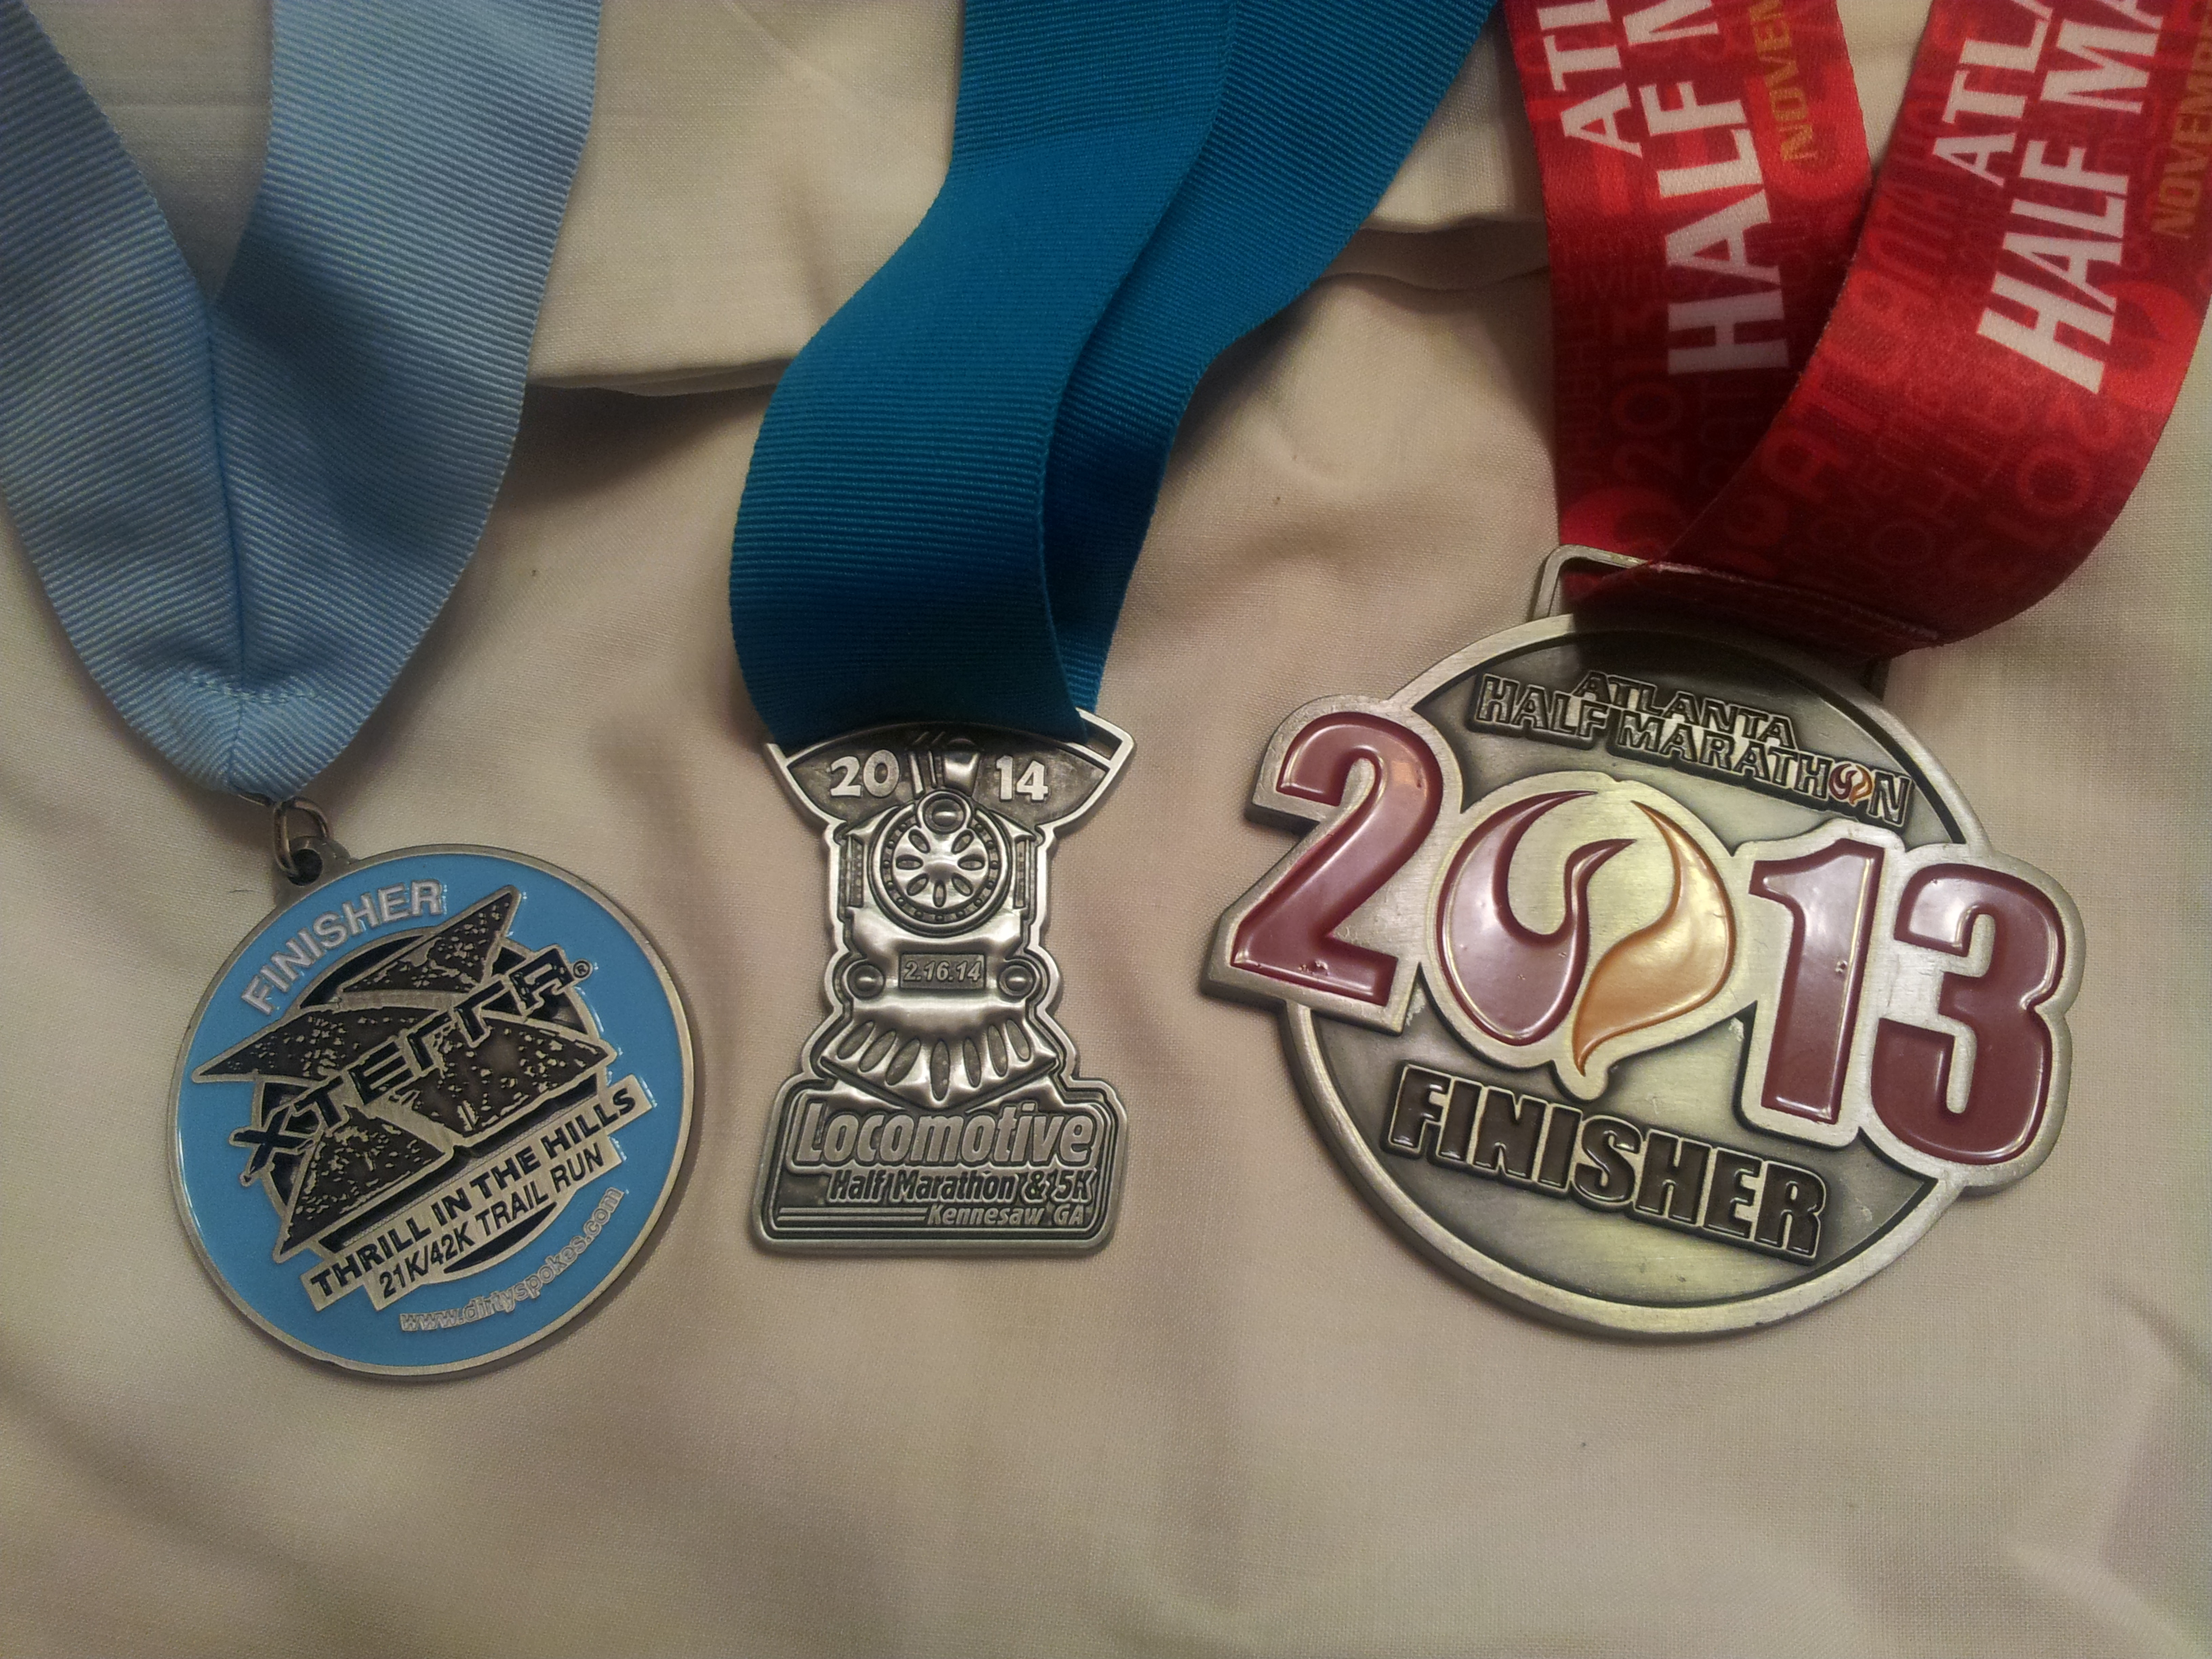 The finisher medals of each of my three half marathons, completed 86 days apart, two within six days.  From the right Thanksgiving 2013 Atlanta Half,  February 16 2014 Locomotive Half Marathon, and February 24 2014 Xterra Thrill In the Hills 21k and 42k.